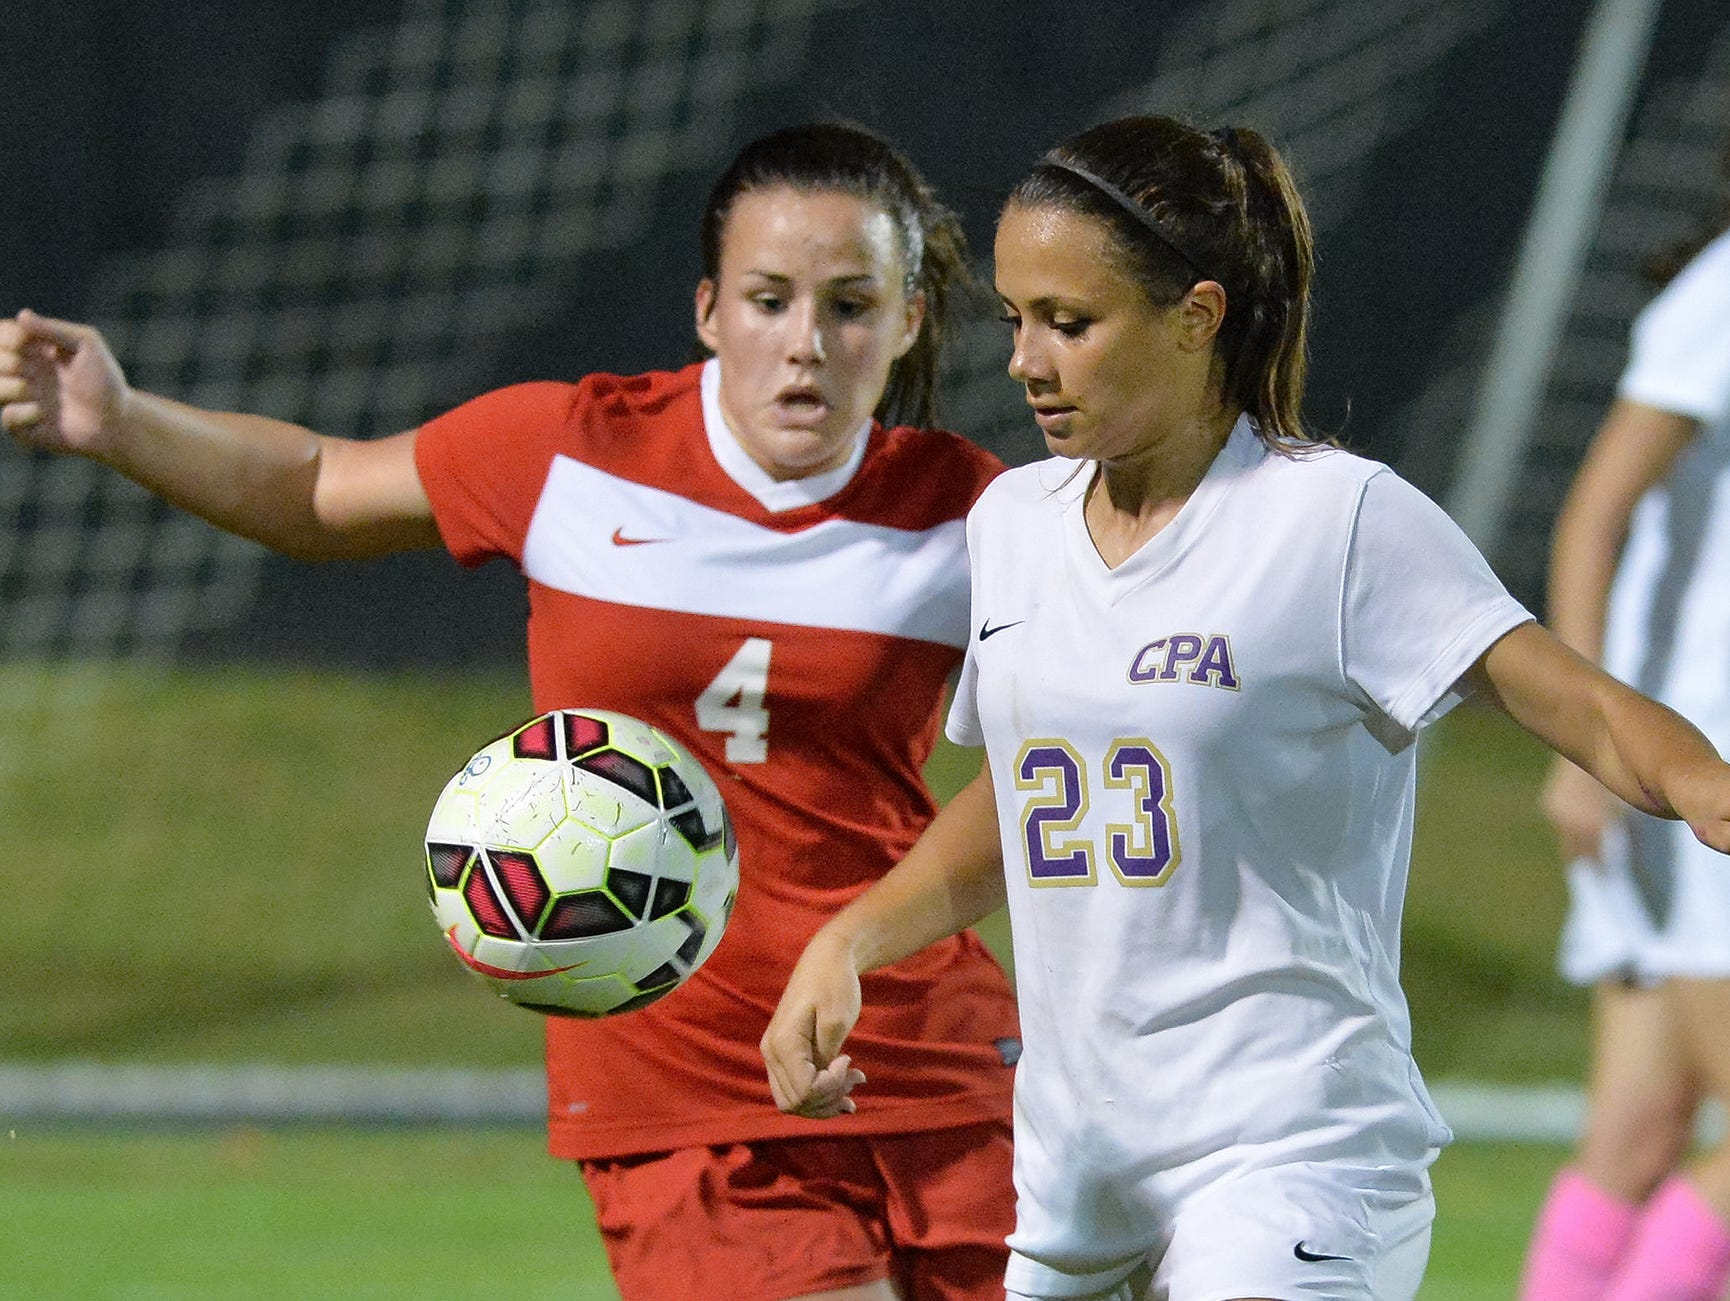 CPA, including Sarah Sievertsen, right, is one of the favorites in Class A-AA.